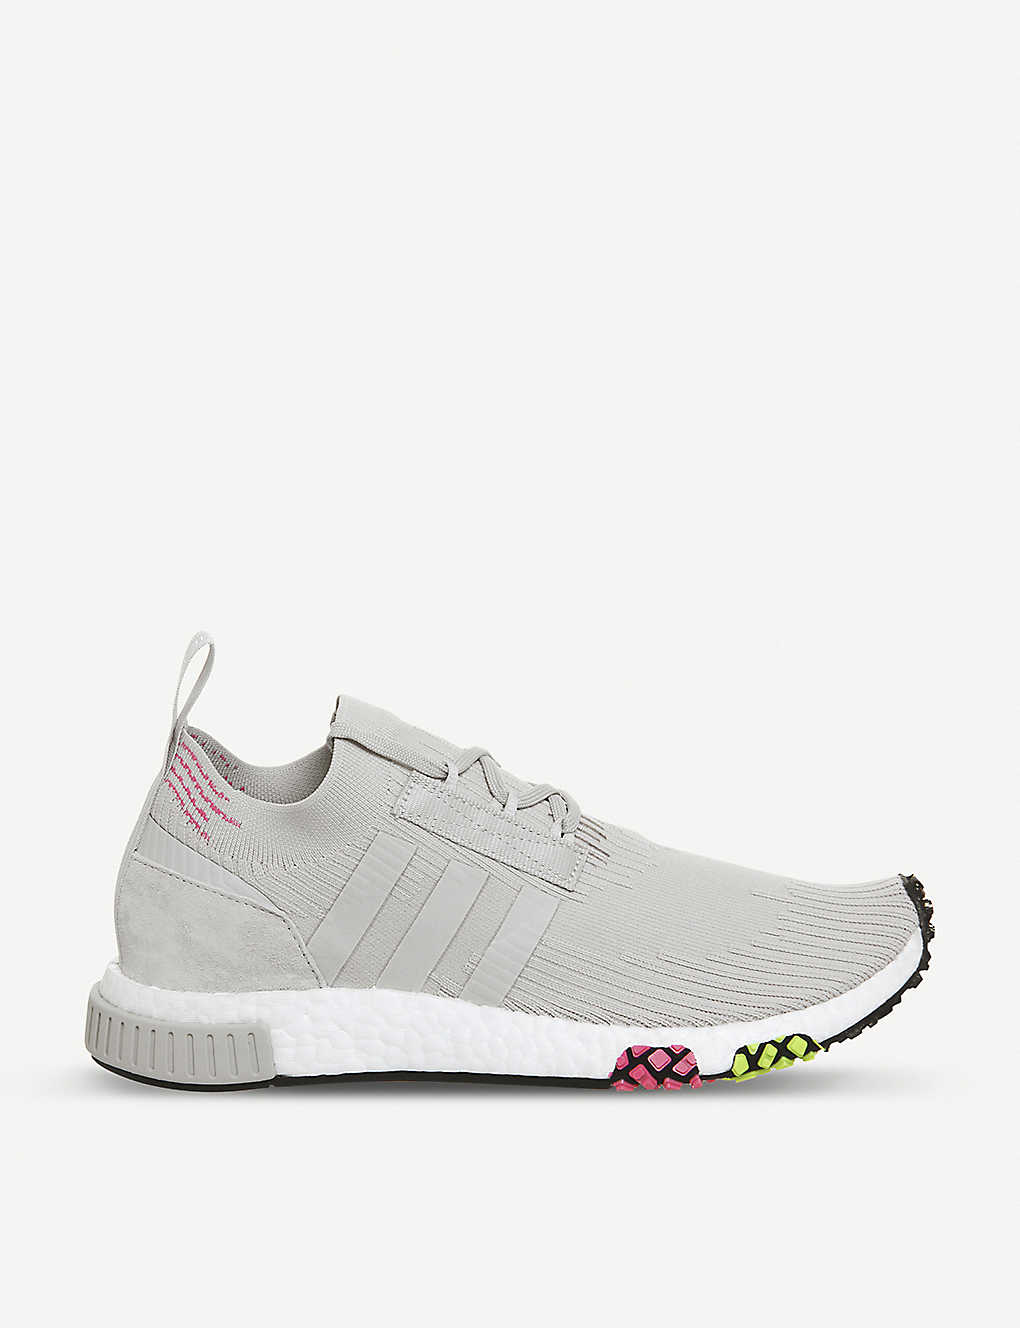 3737e29e3fc74 Nmd Racer Primeknit and leather trainers - Grey one solar pink ...